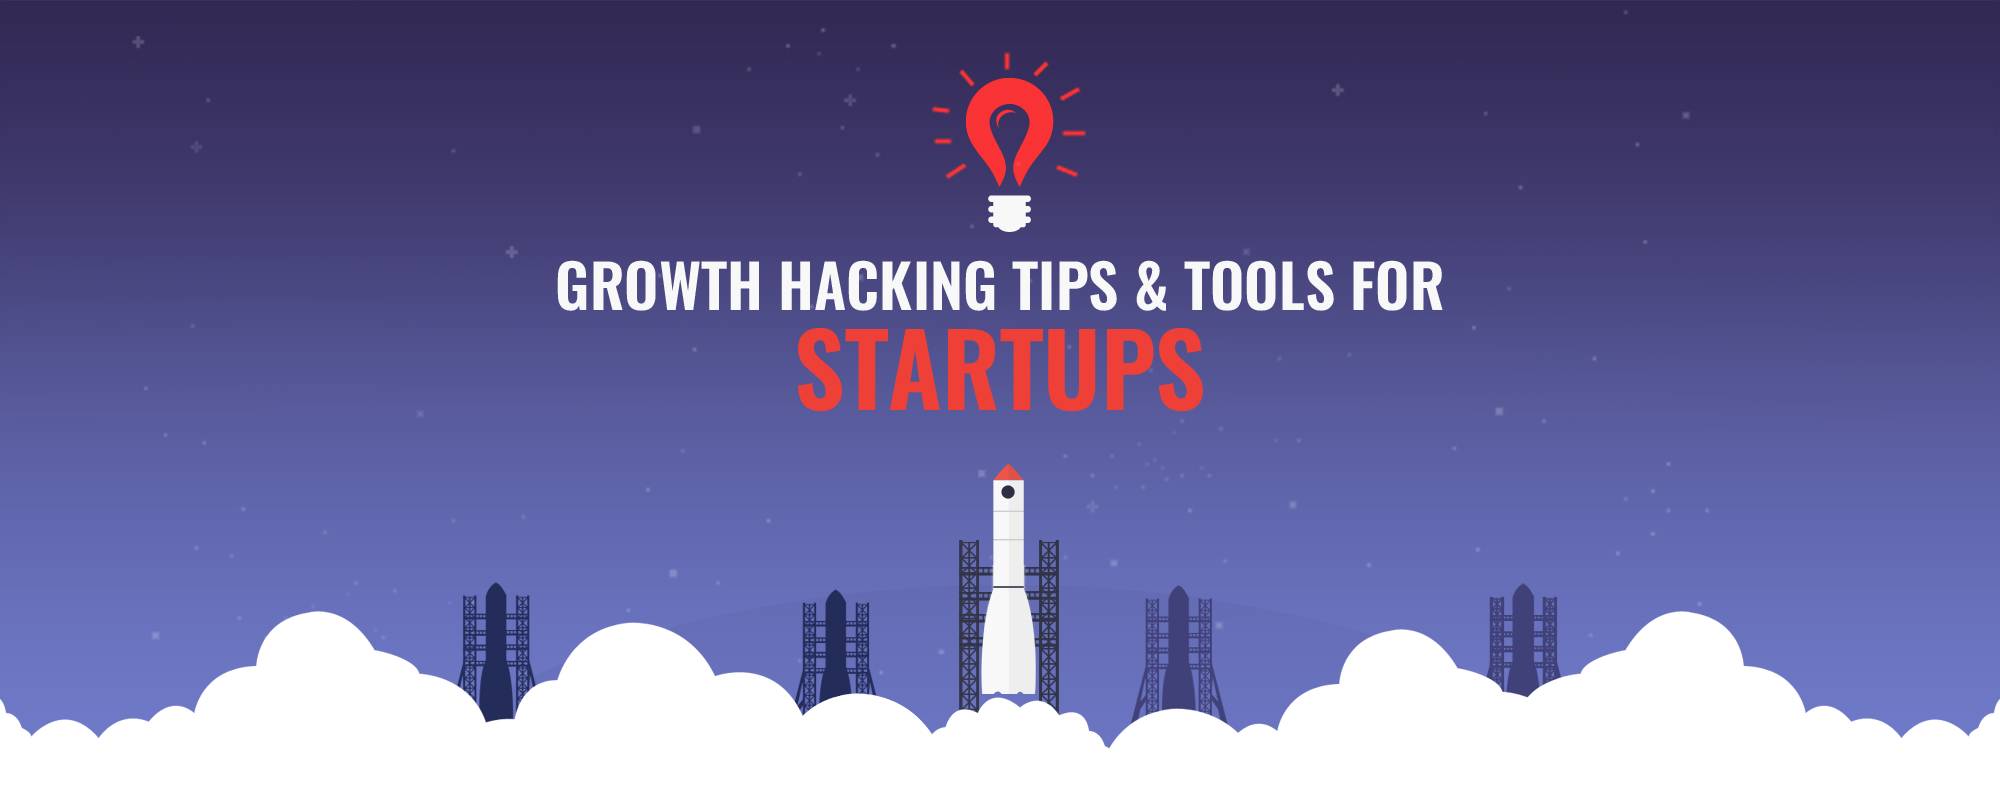 9 Growth Hacking Tips & Tools For Startups & Ecommerce Businesses